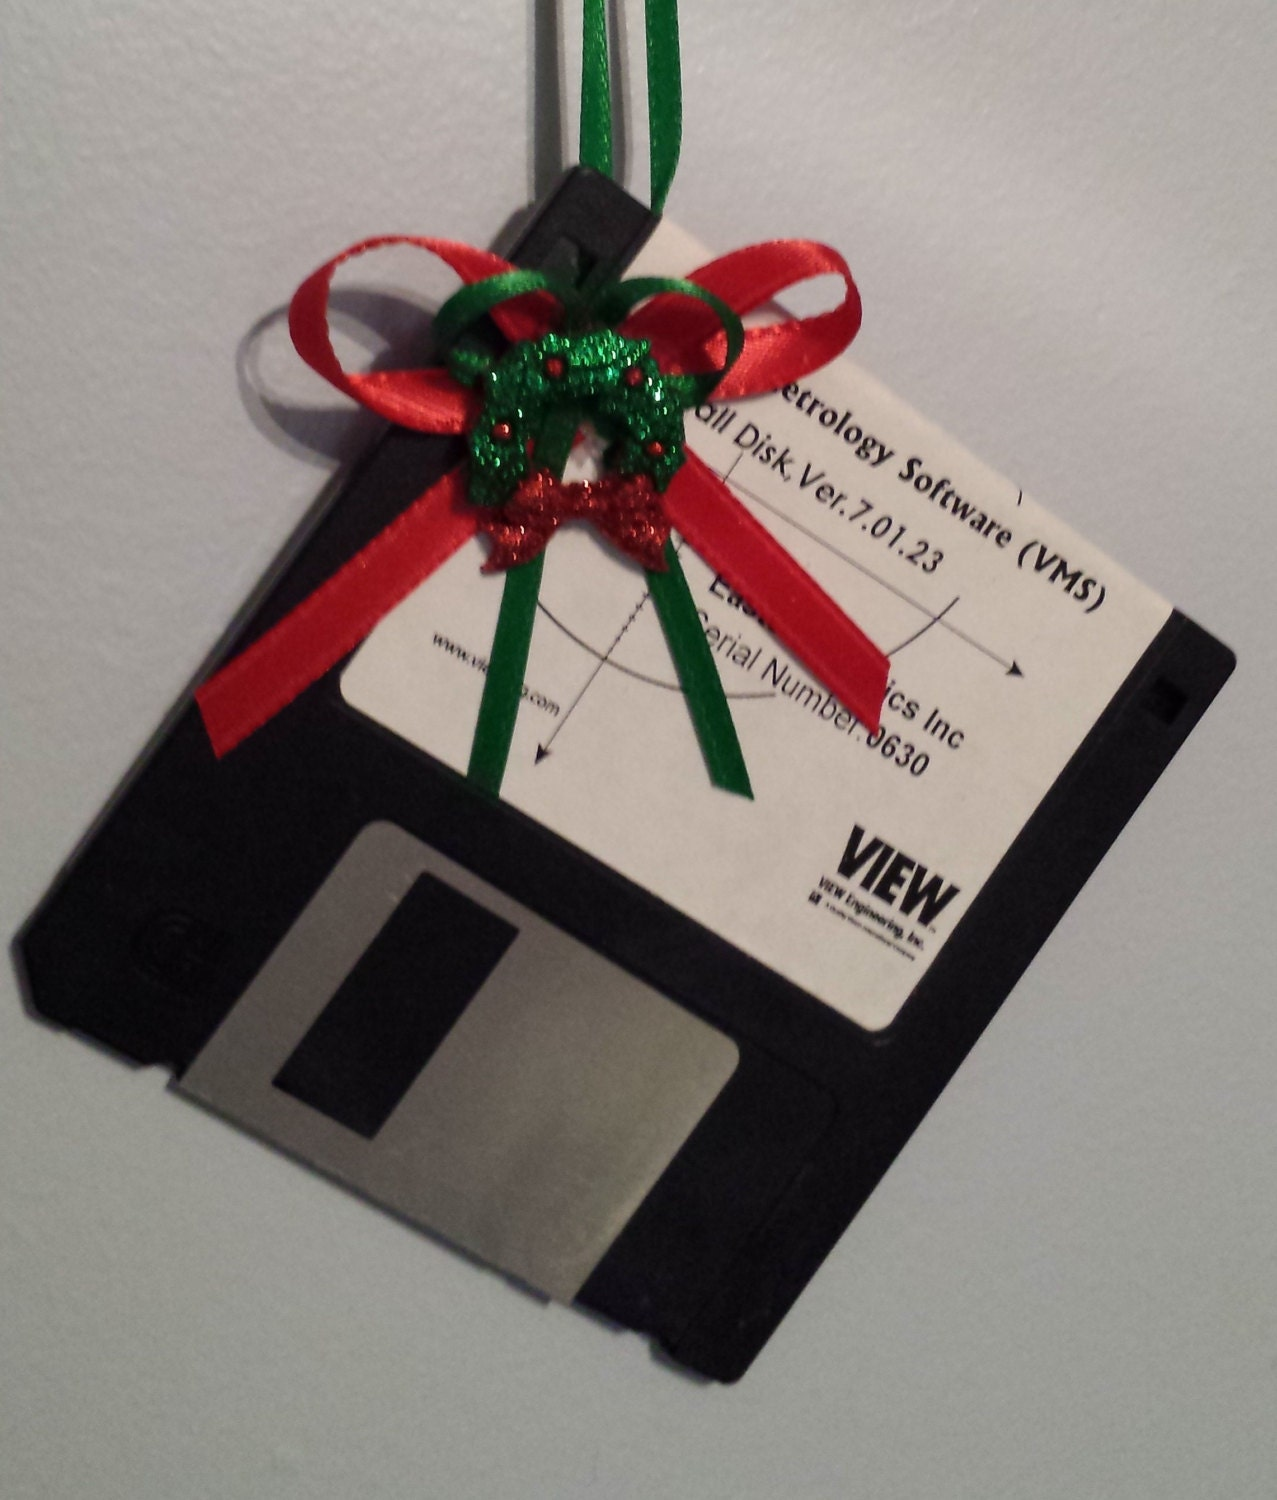 GEEK Christmas Ornament - Computer Floppy Disk with Mini Christmas Wreath